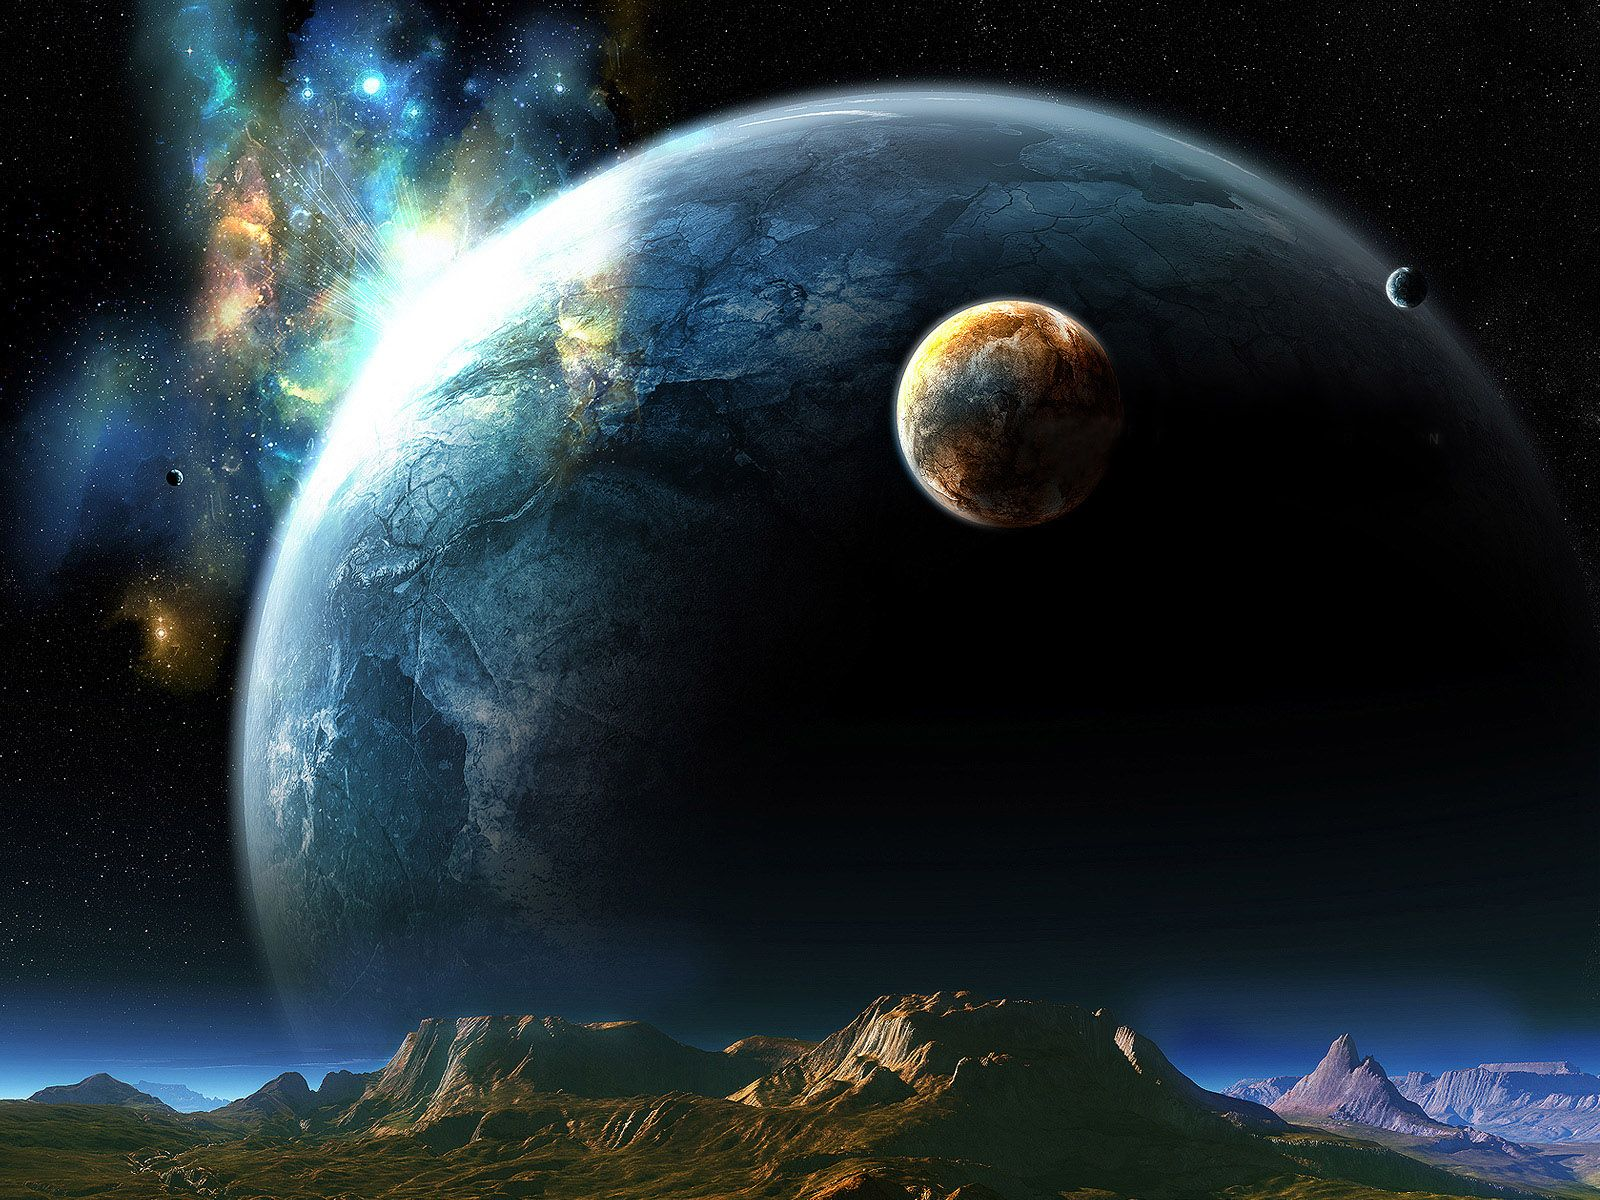 Rocky Mountain Free Wallpaper Wallpapers Huge Planet Over